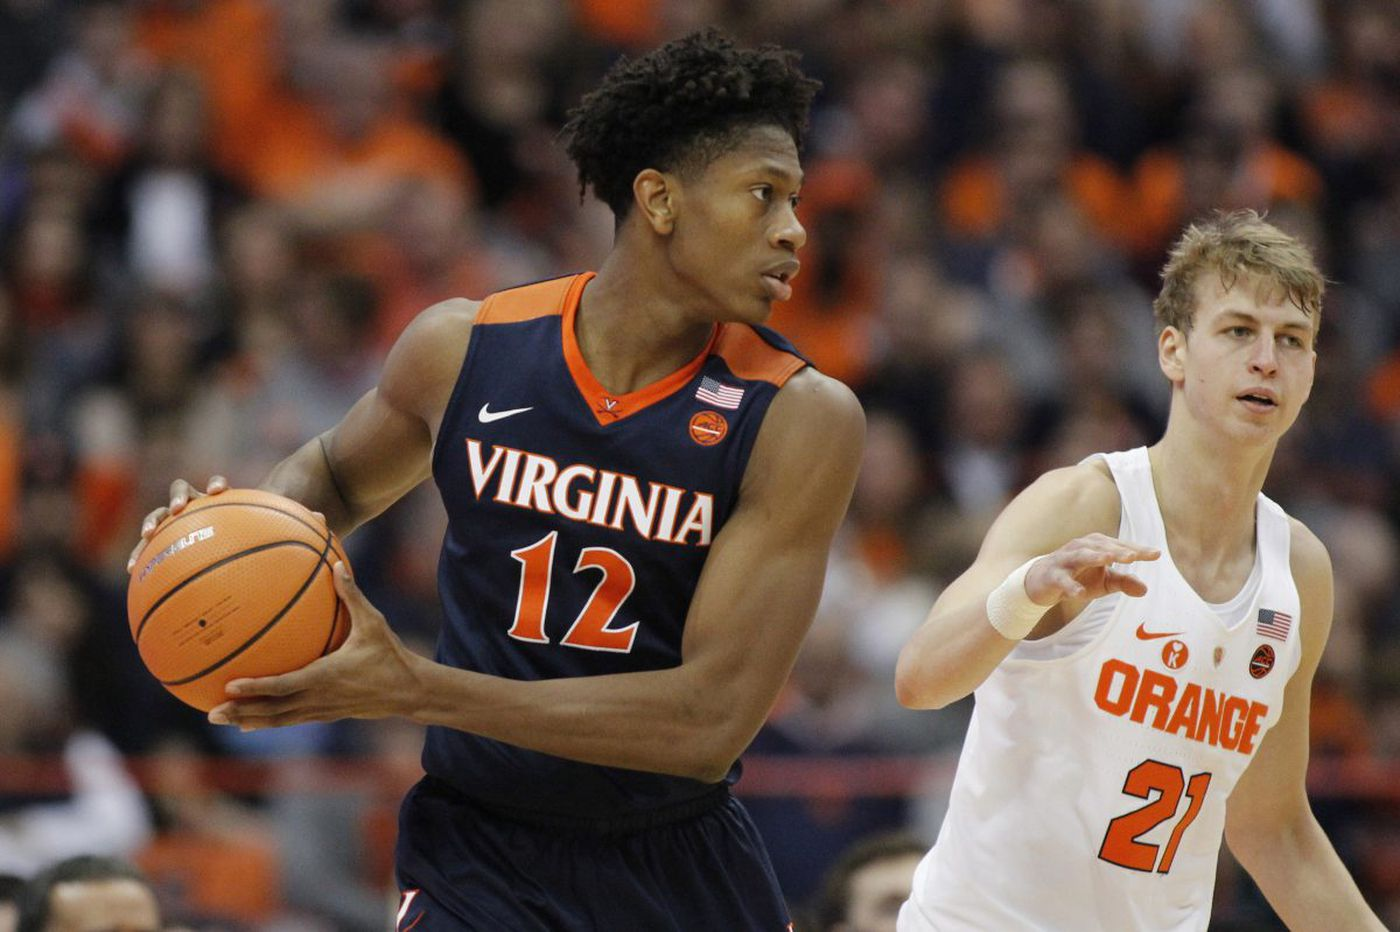 Virginia on track to replace Villanova atop rankings | College Hoops Topics